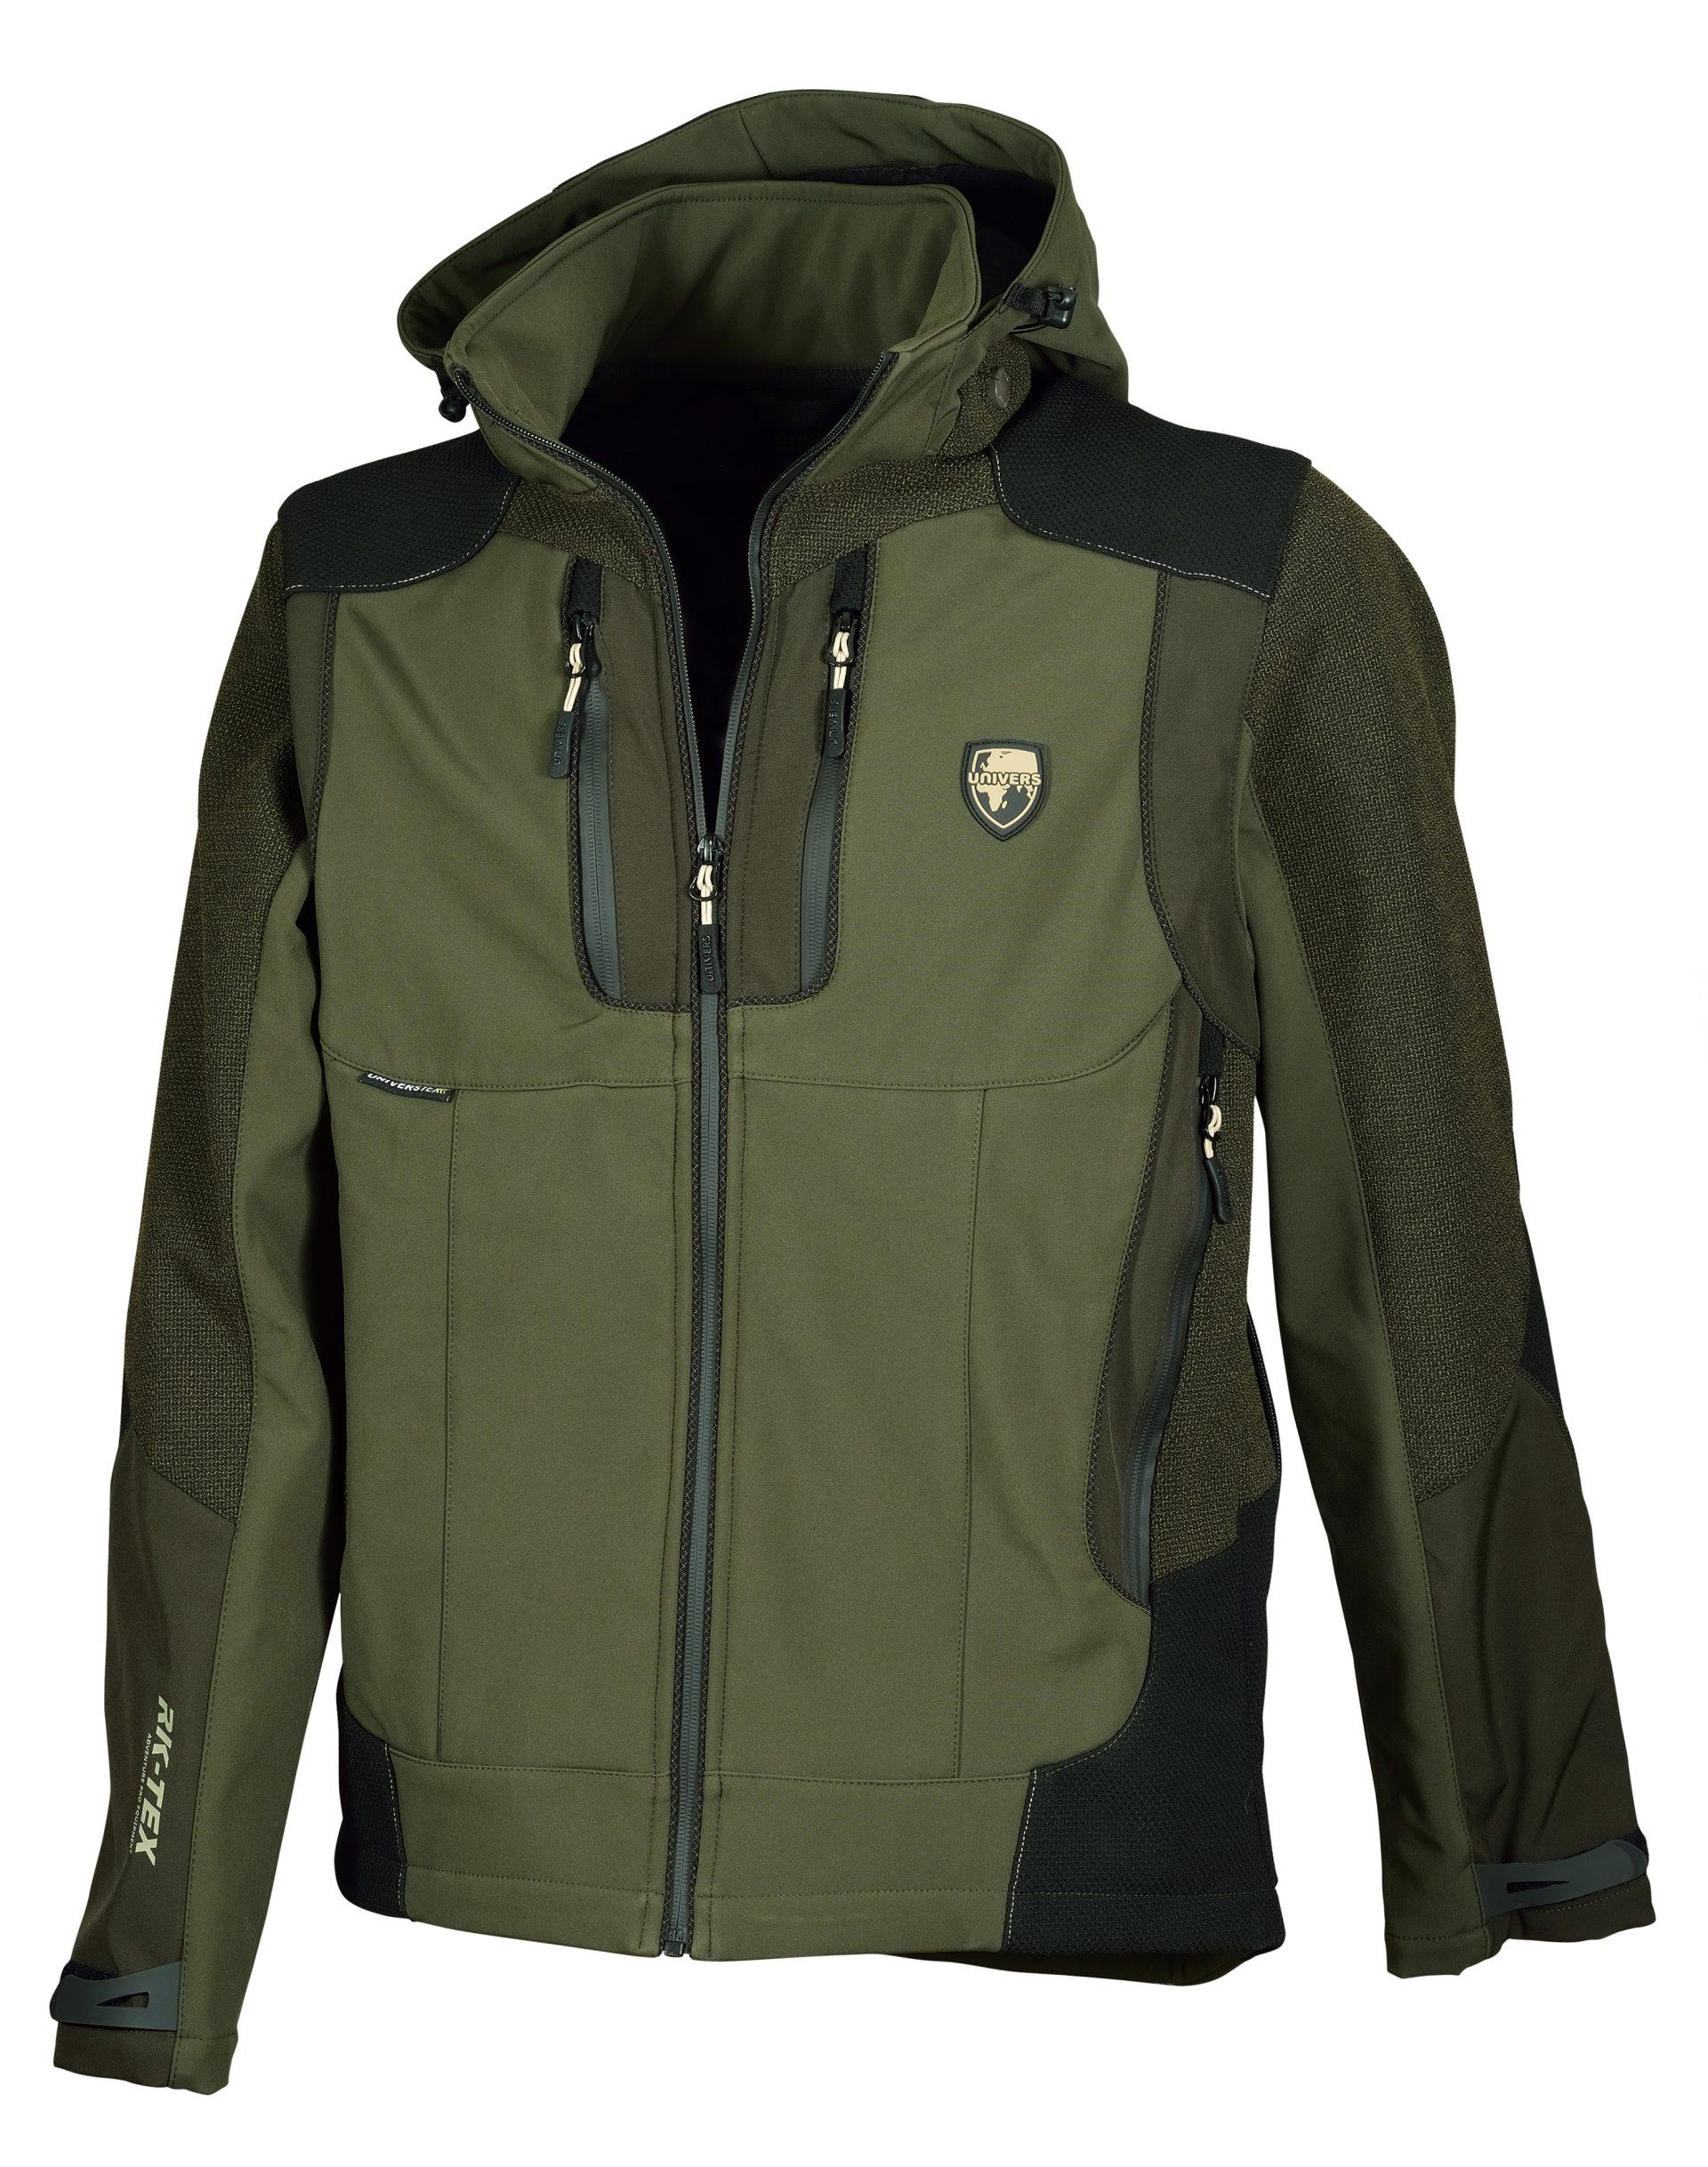 Univers Jacket Waterproof 91002/326